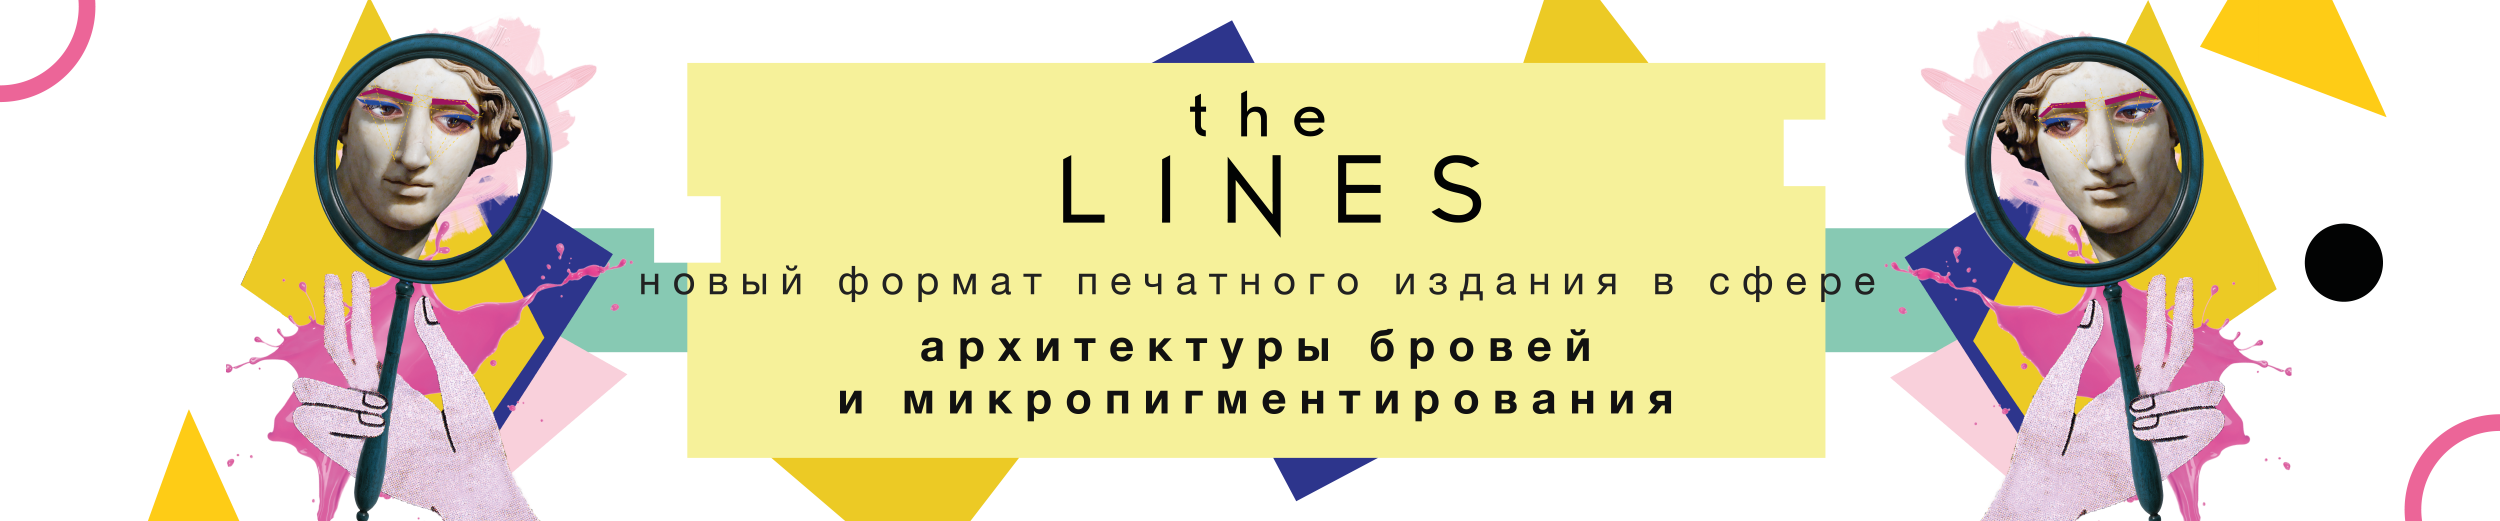 THE LINES Award